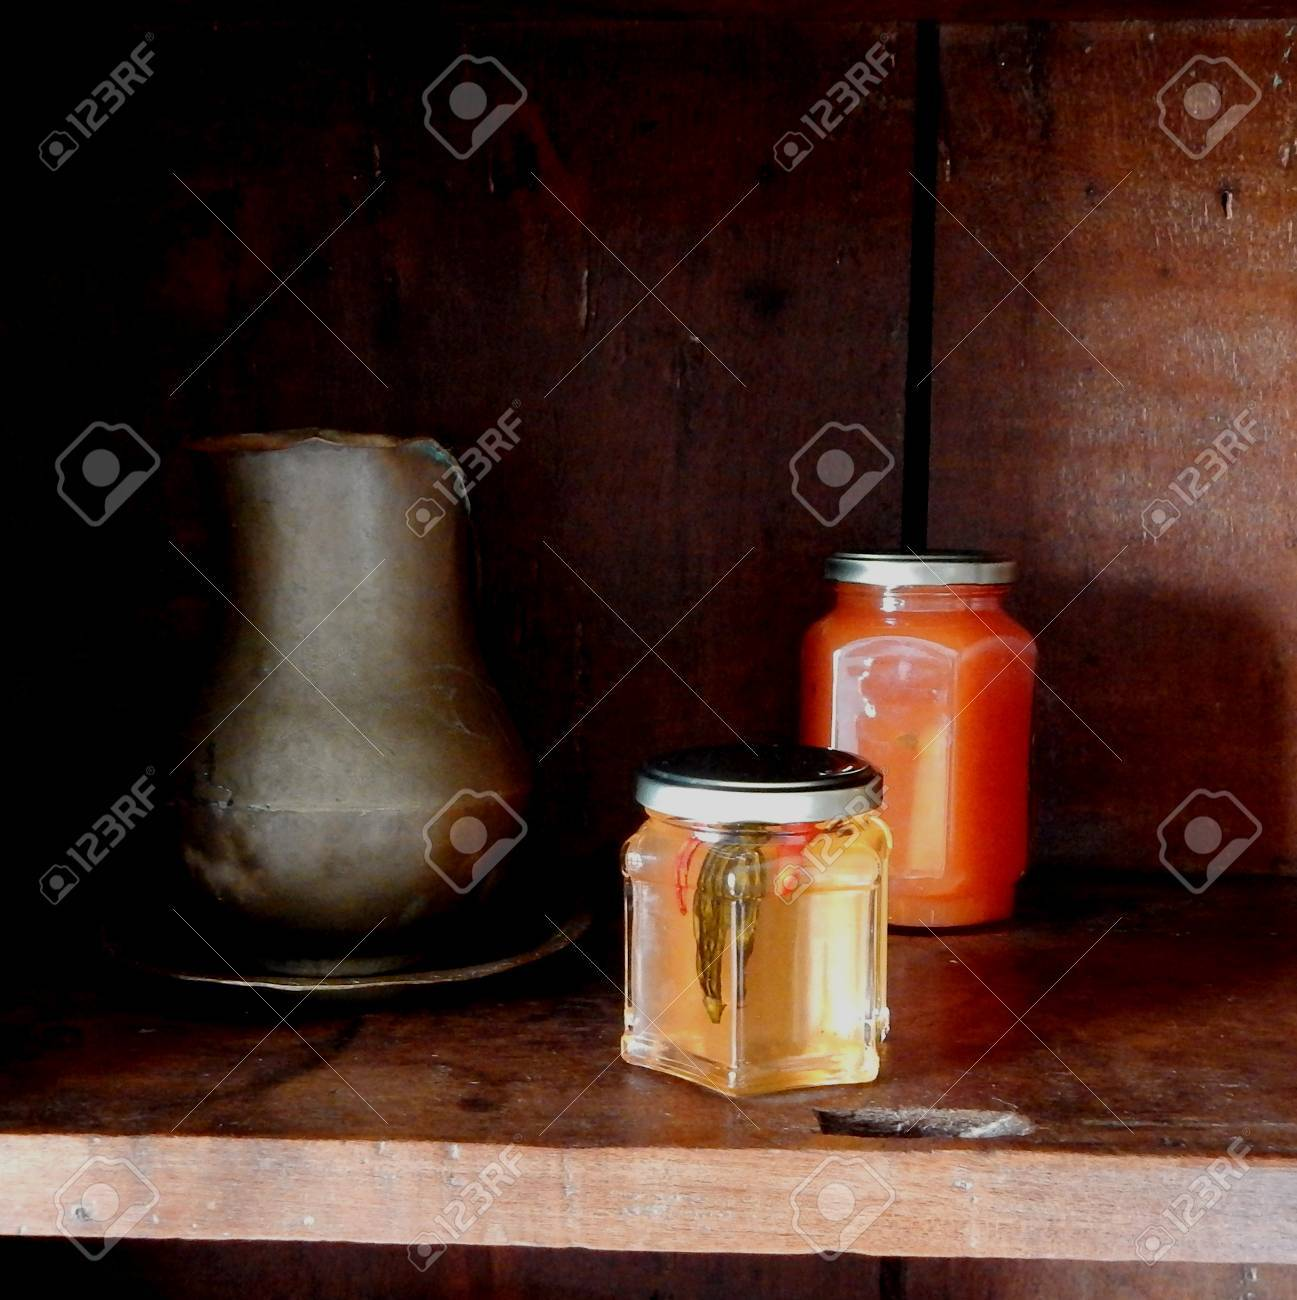 Tropical jellies and tin jar in closet wooden rustic - 67646790